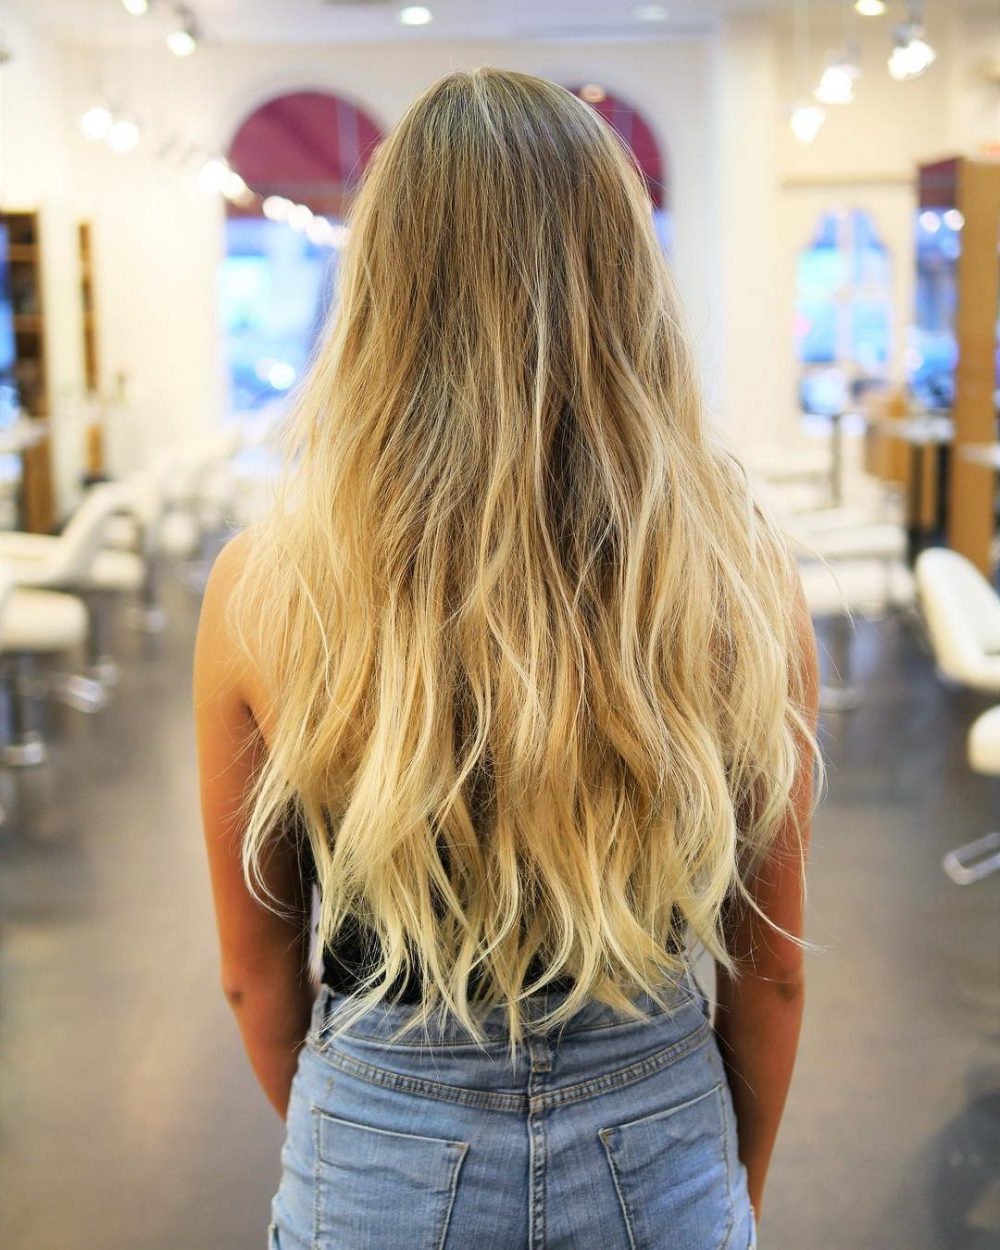 34 Cutest Long Layered Haircuts Trending In 2019 For Favorite Long Feathered Haircuts With Layers (View 2 of 20)